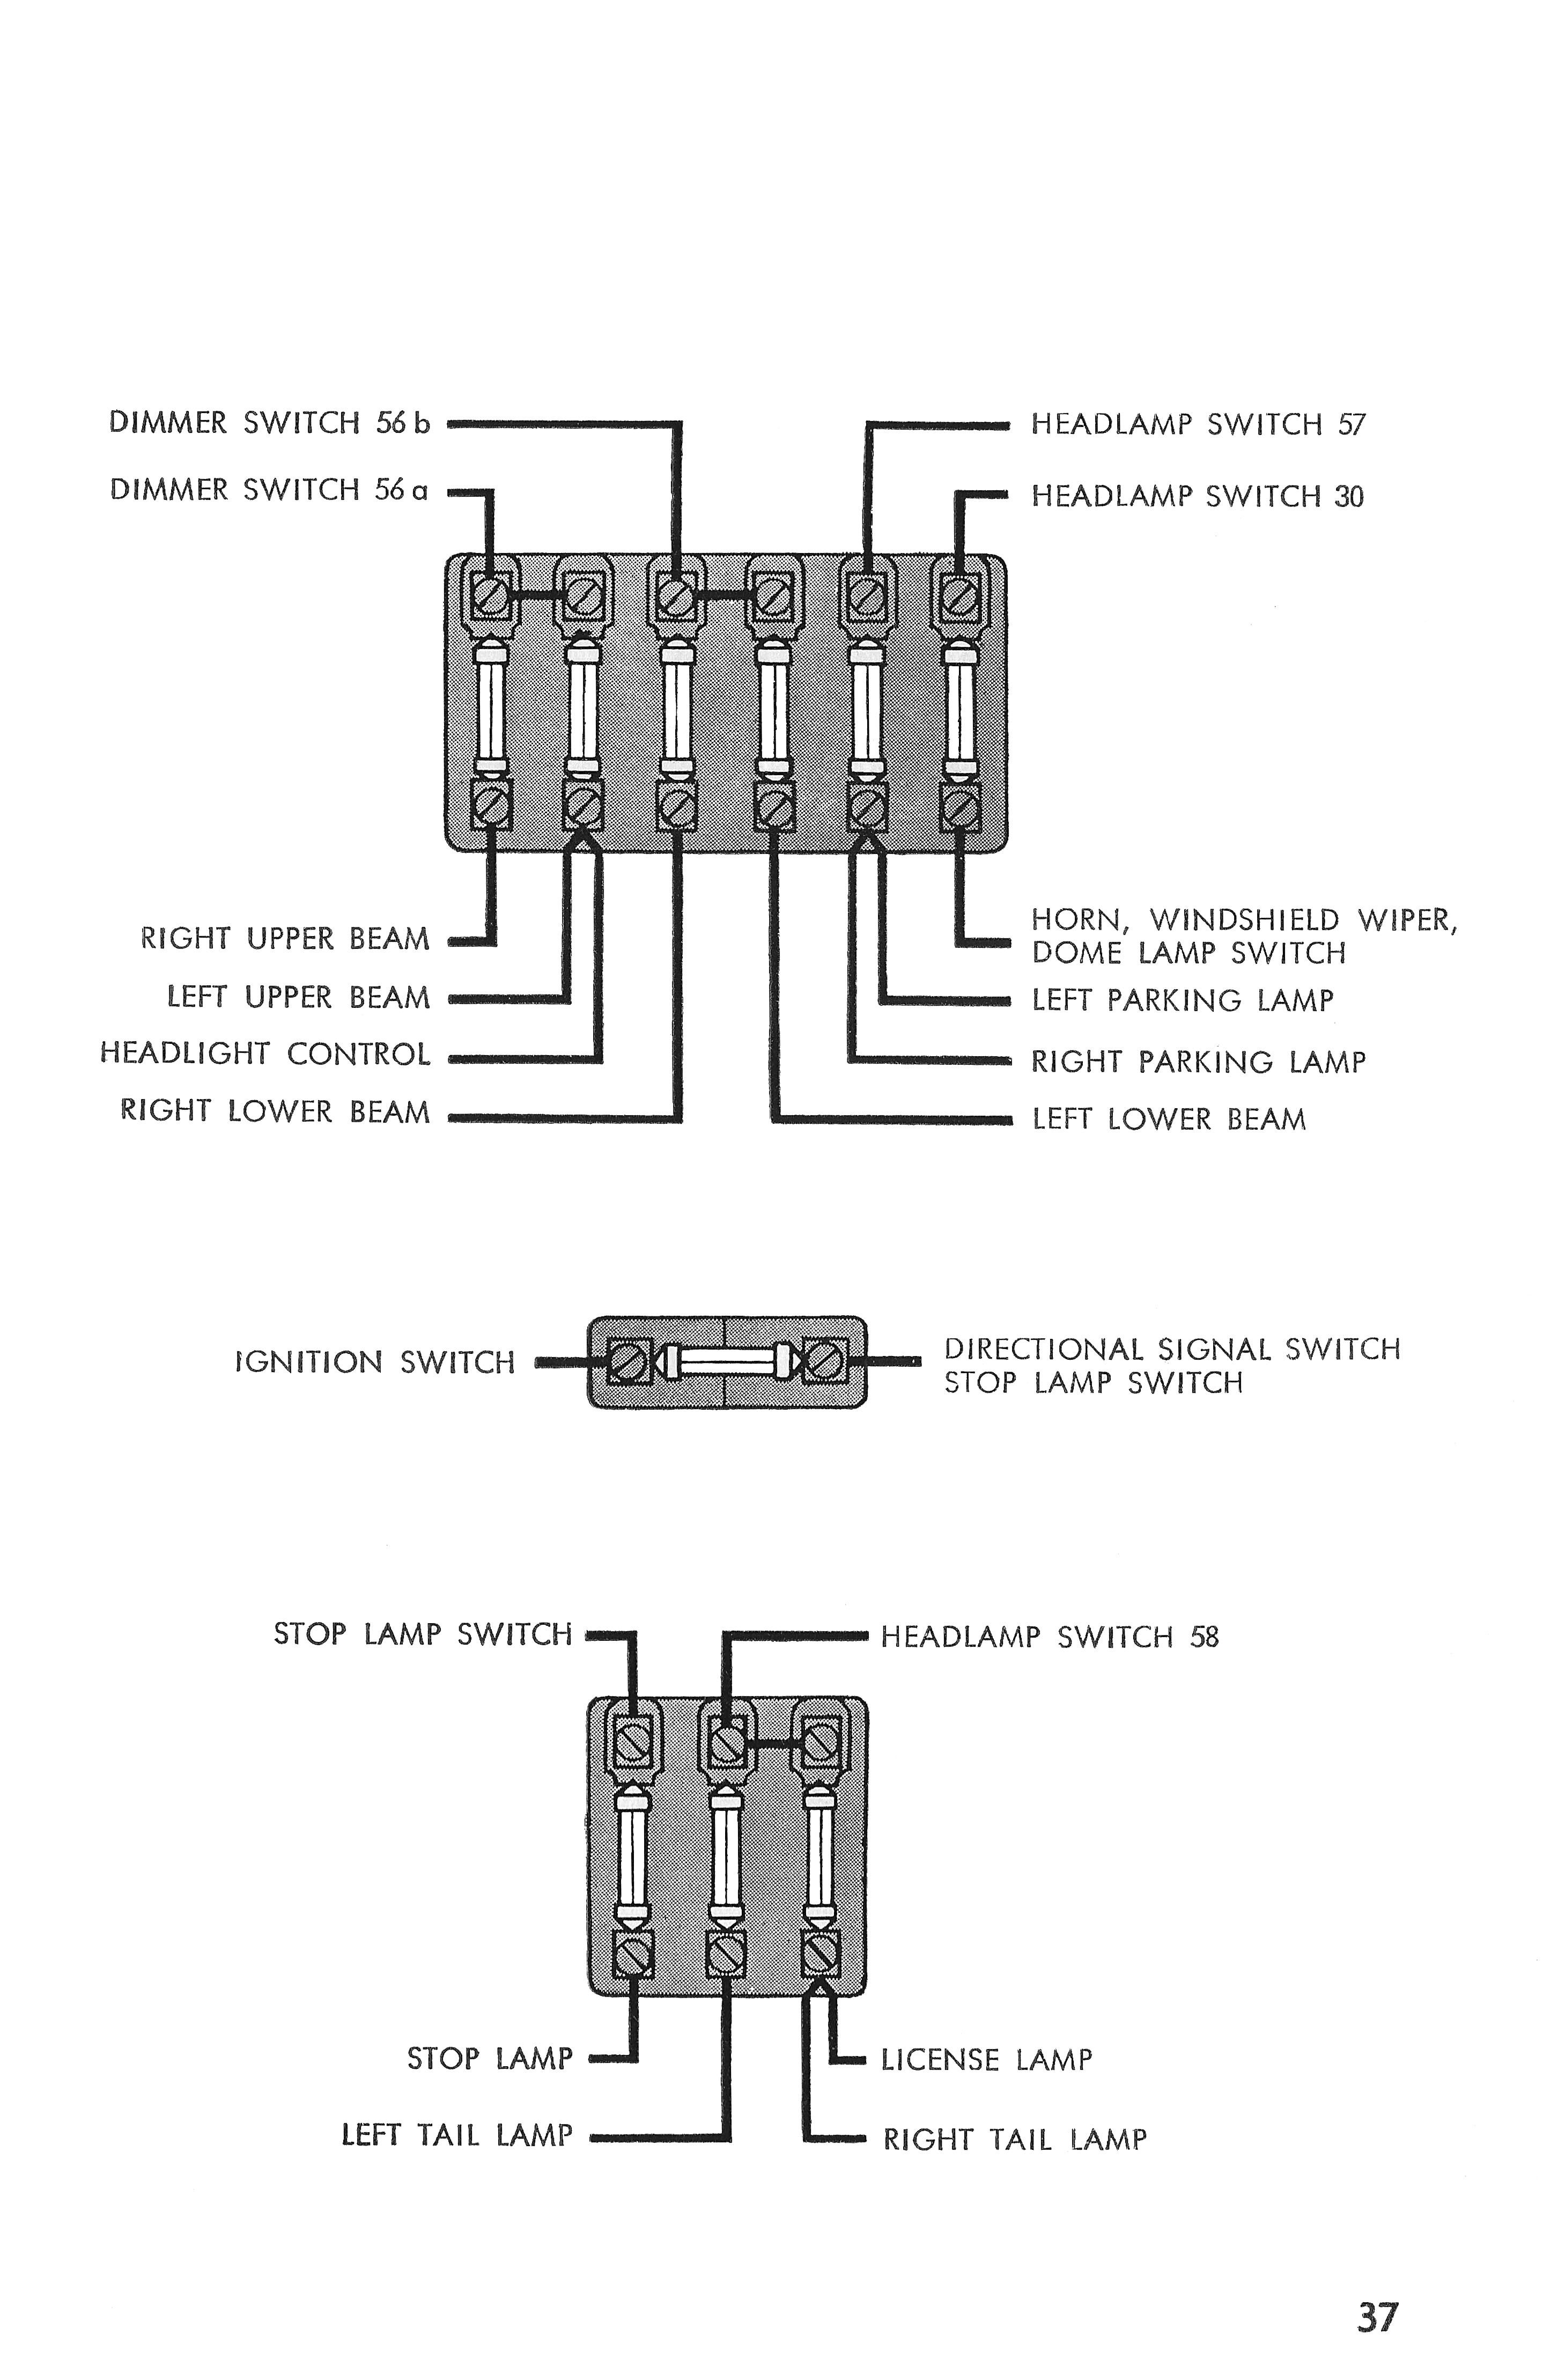 Headlight Dimmer Switch Wiring Diagram For Saleexpert Me Within